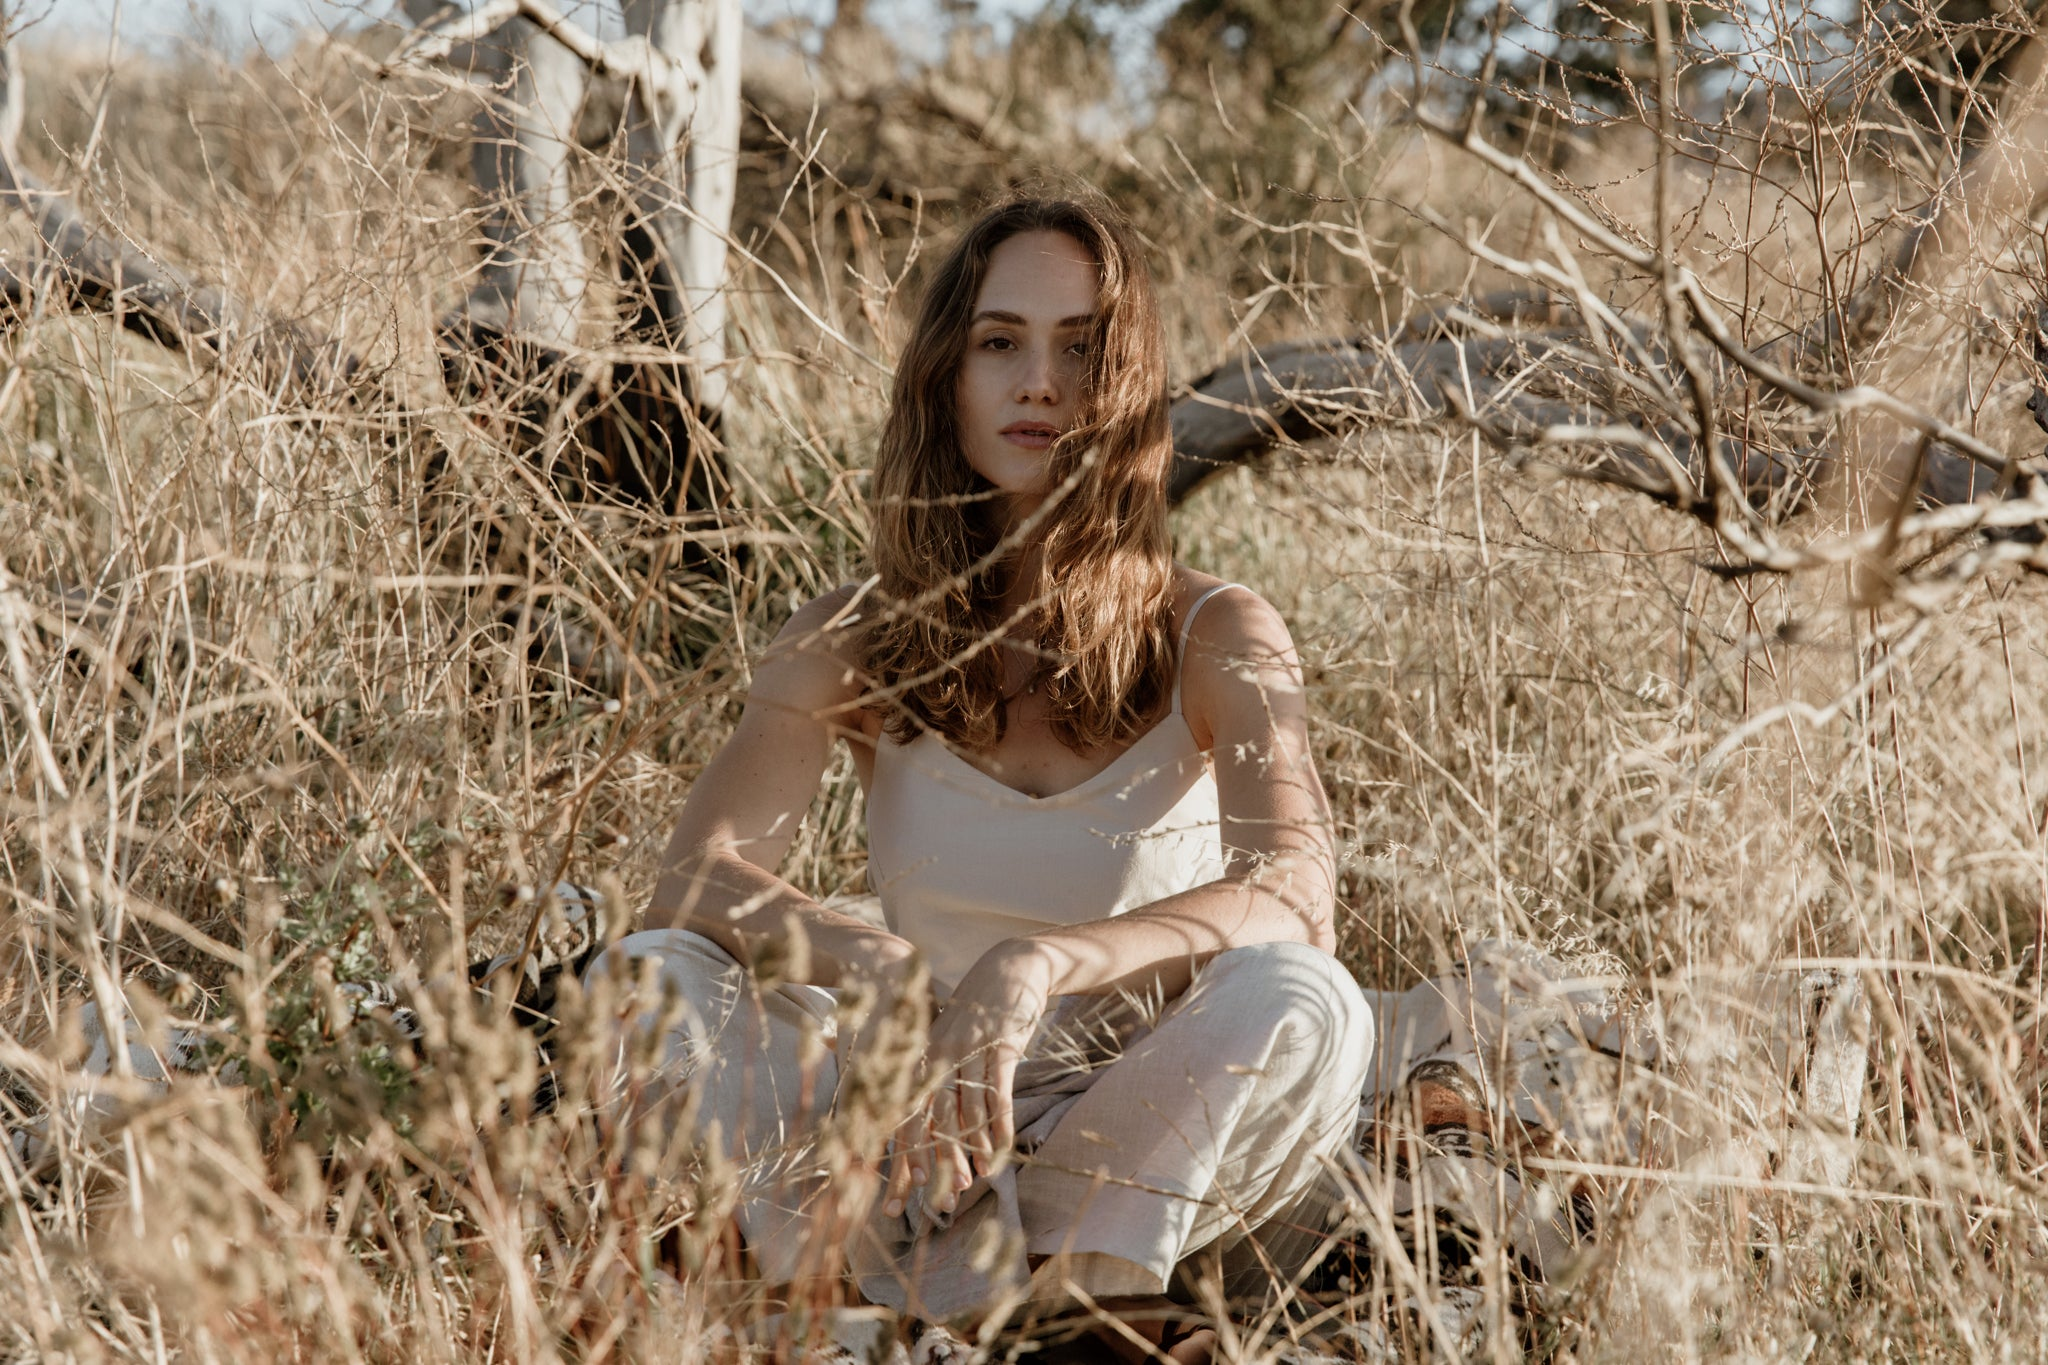 Quiet moments in nature, woman wearing slow fashion linen dress and sustainable rings, necklace and earrings